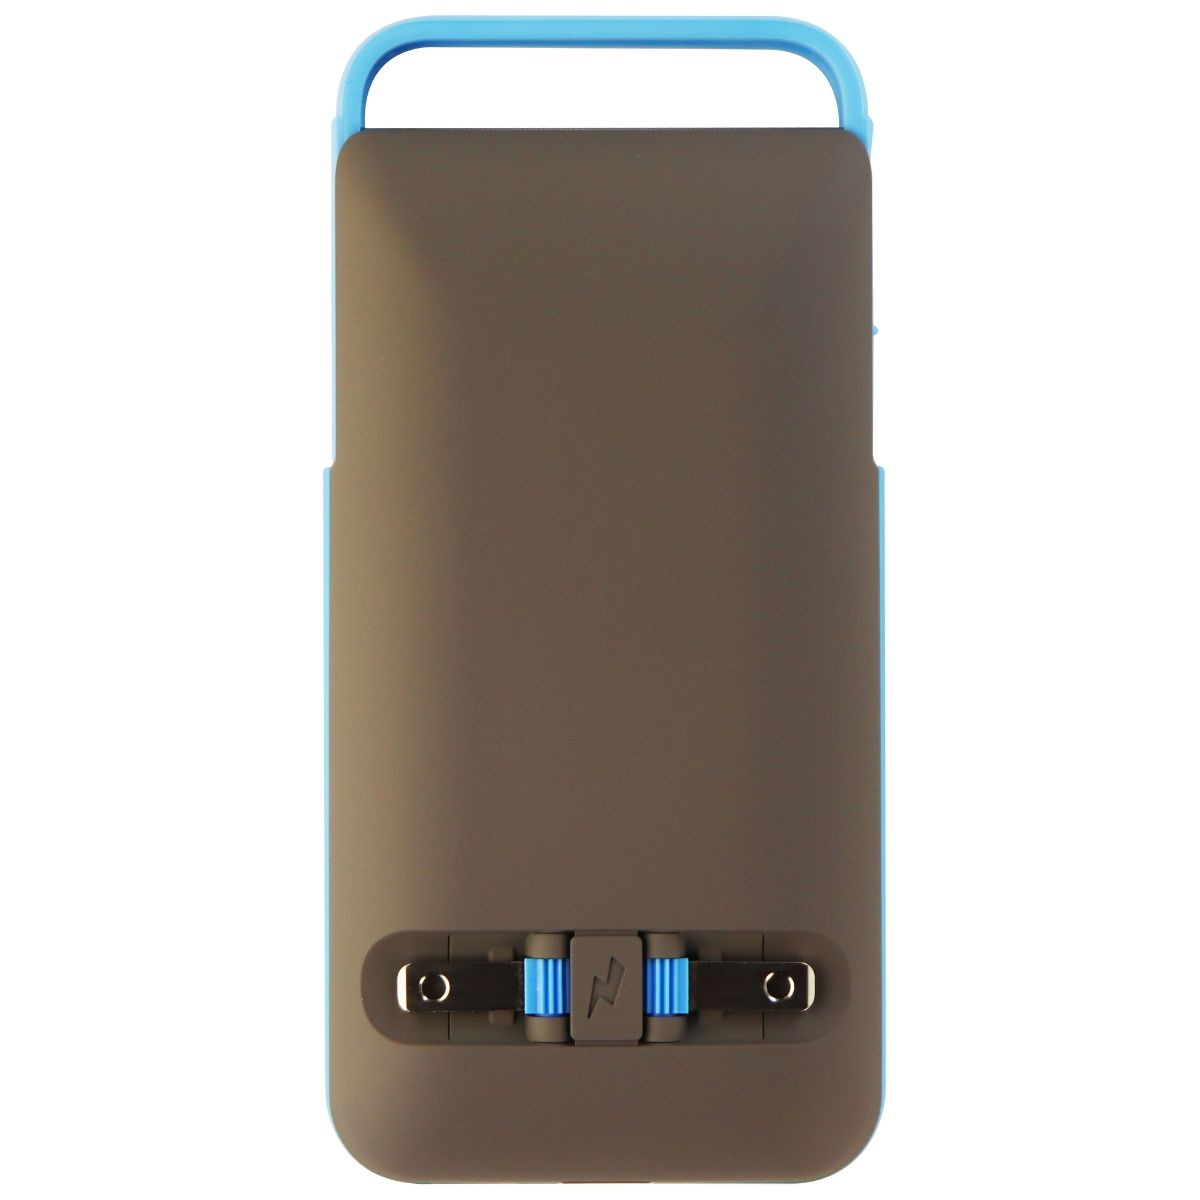 Prong 3,500mAh PWR Case with Wall Plugs for Apple iPhone 6s/6 - Turquoise/Grey